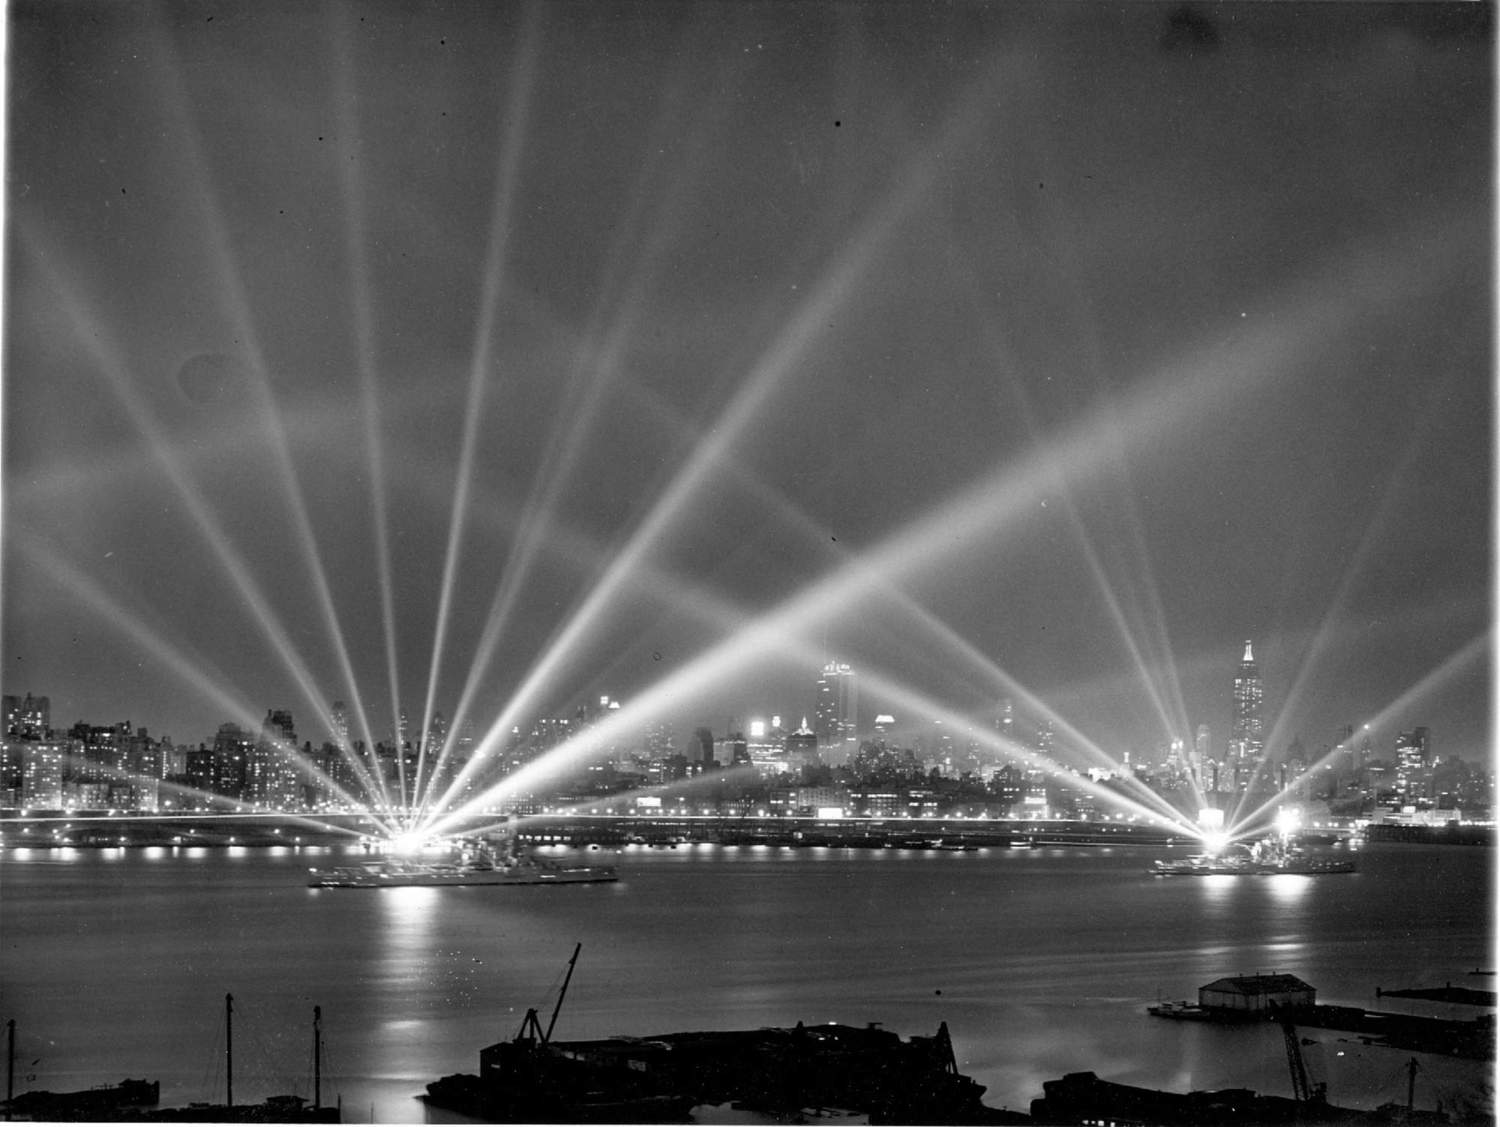 Battleships USS Texas and USS New York on the Hudson light up the night sky with their huge searchlights in search of imaginary aerial attackers. New York, 3 May 1939.